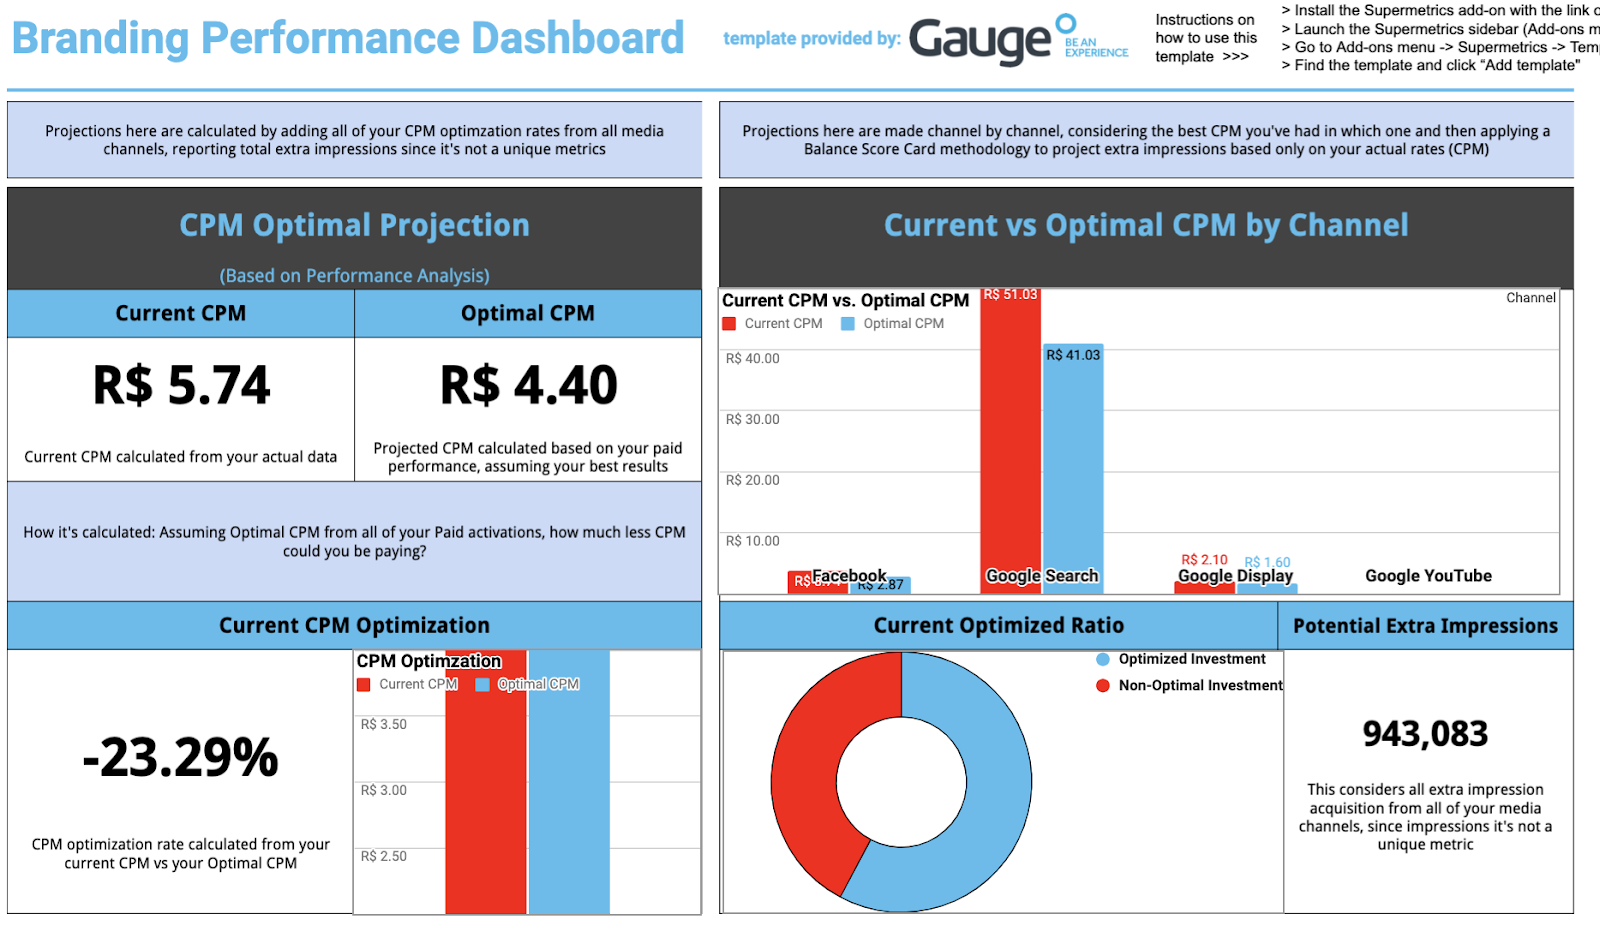 Paid social performance dashboard template by Gauge - Google Sheets